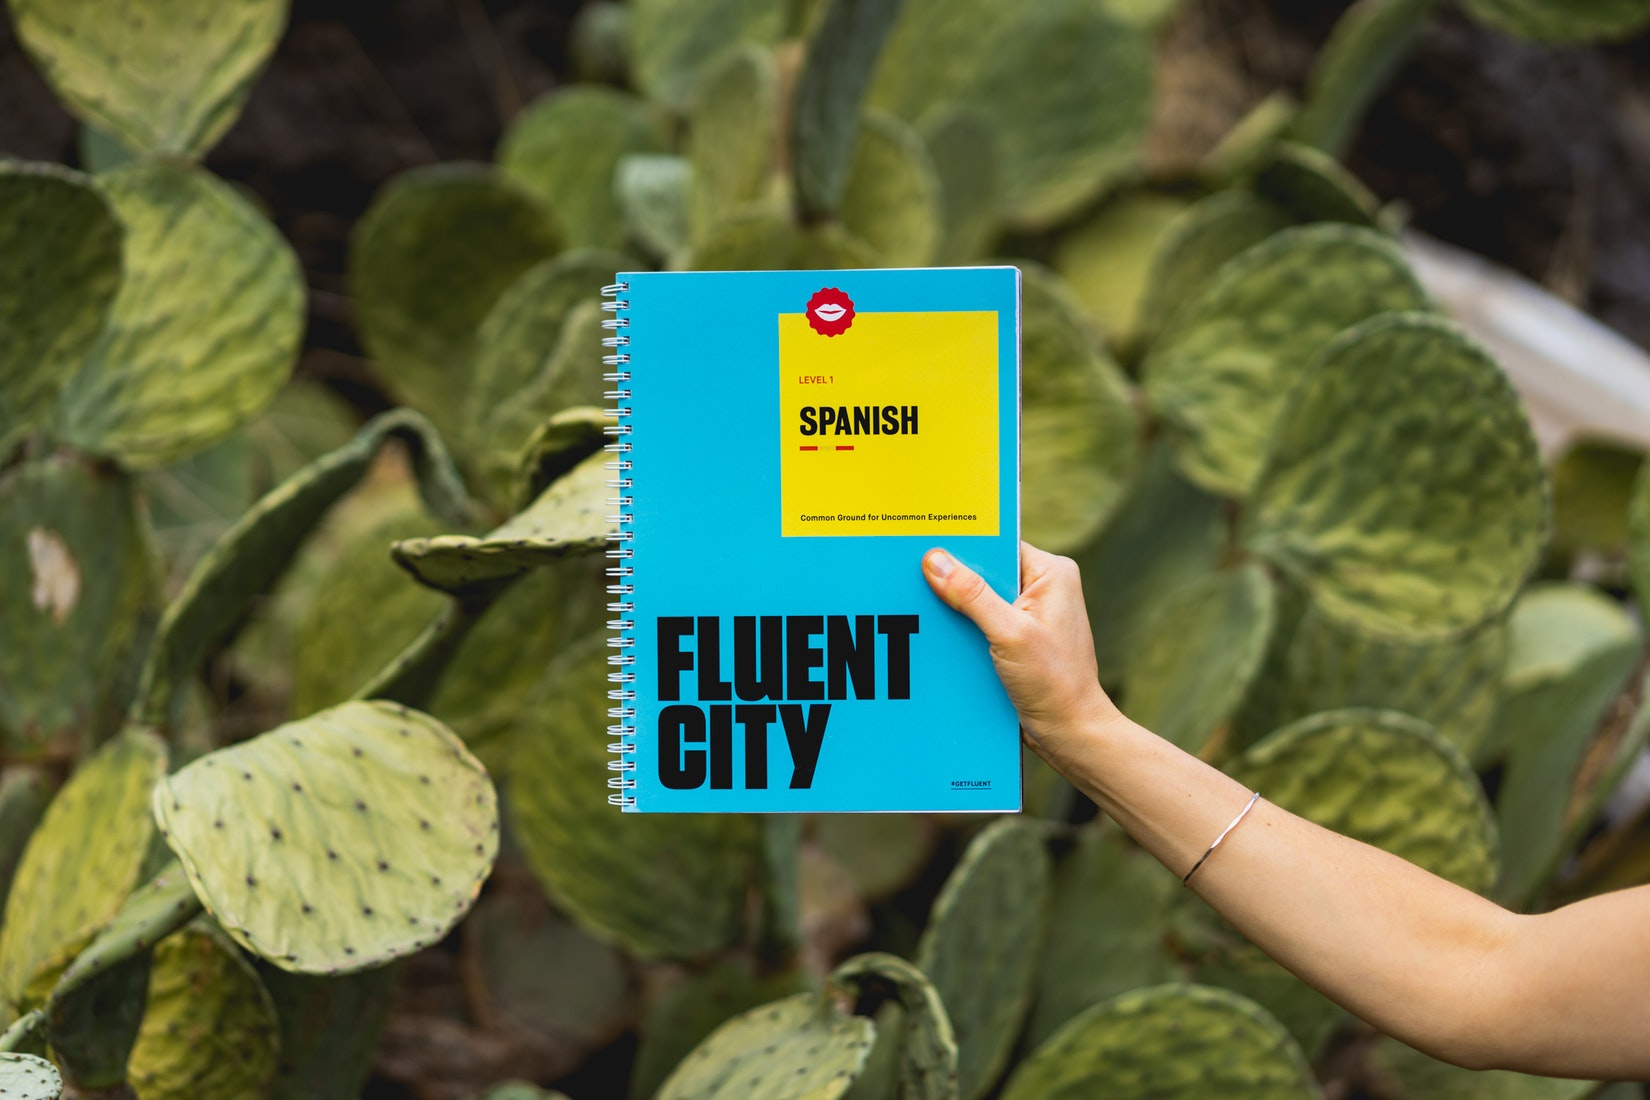 Fluent City Spanish 2 book